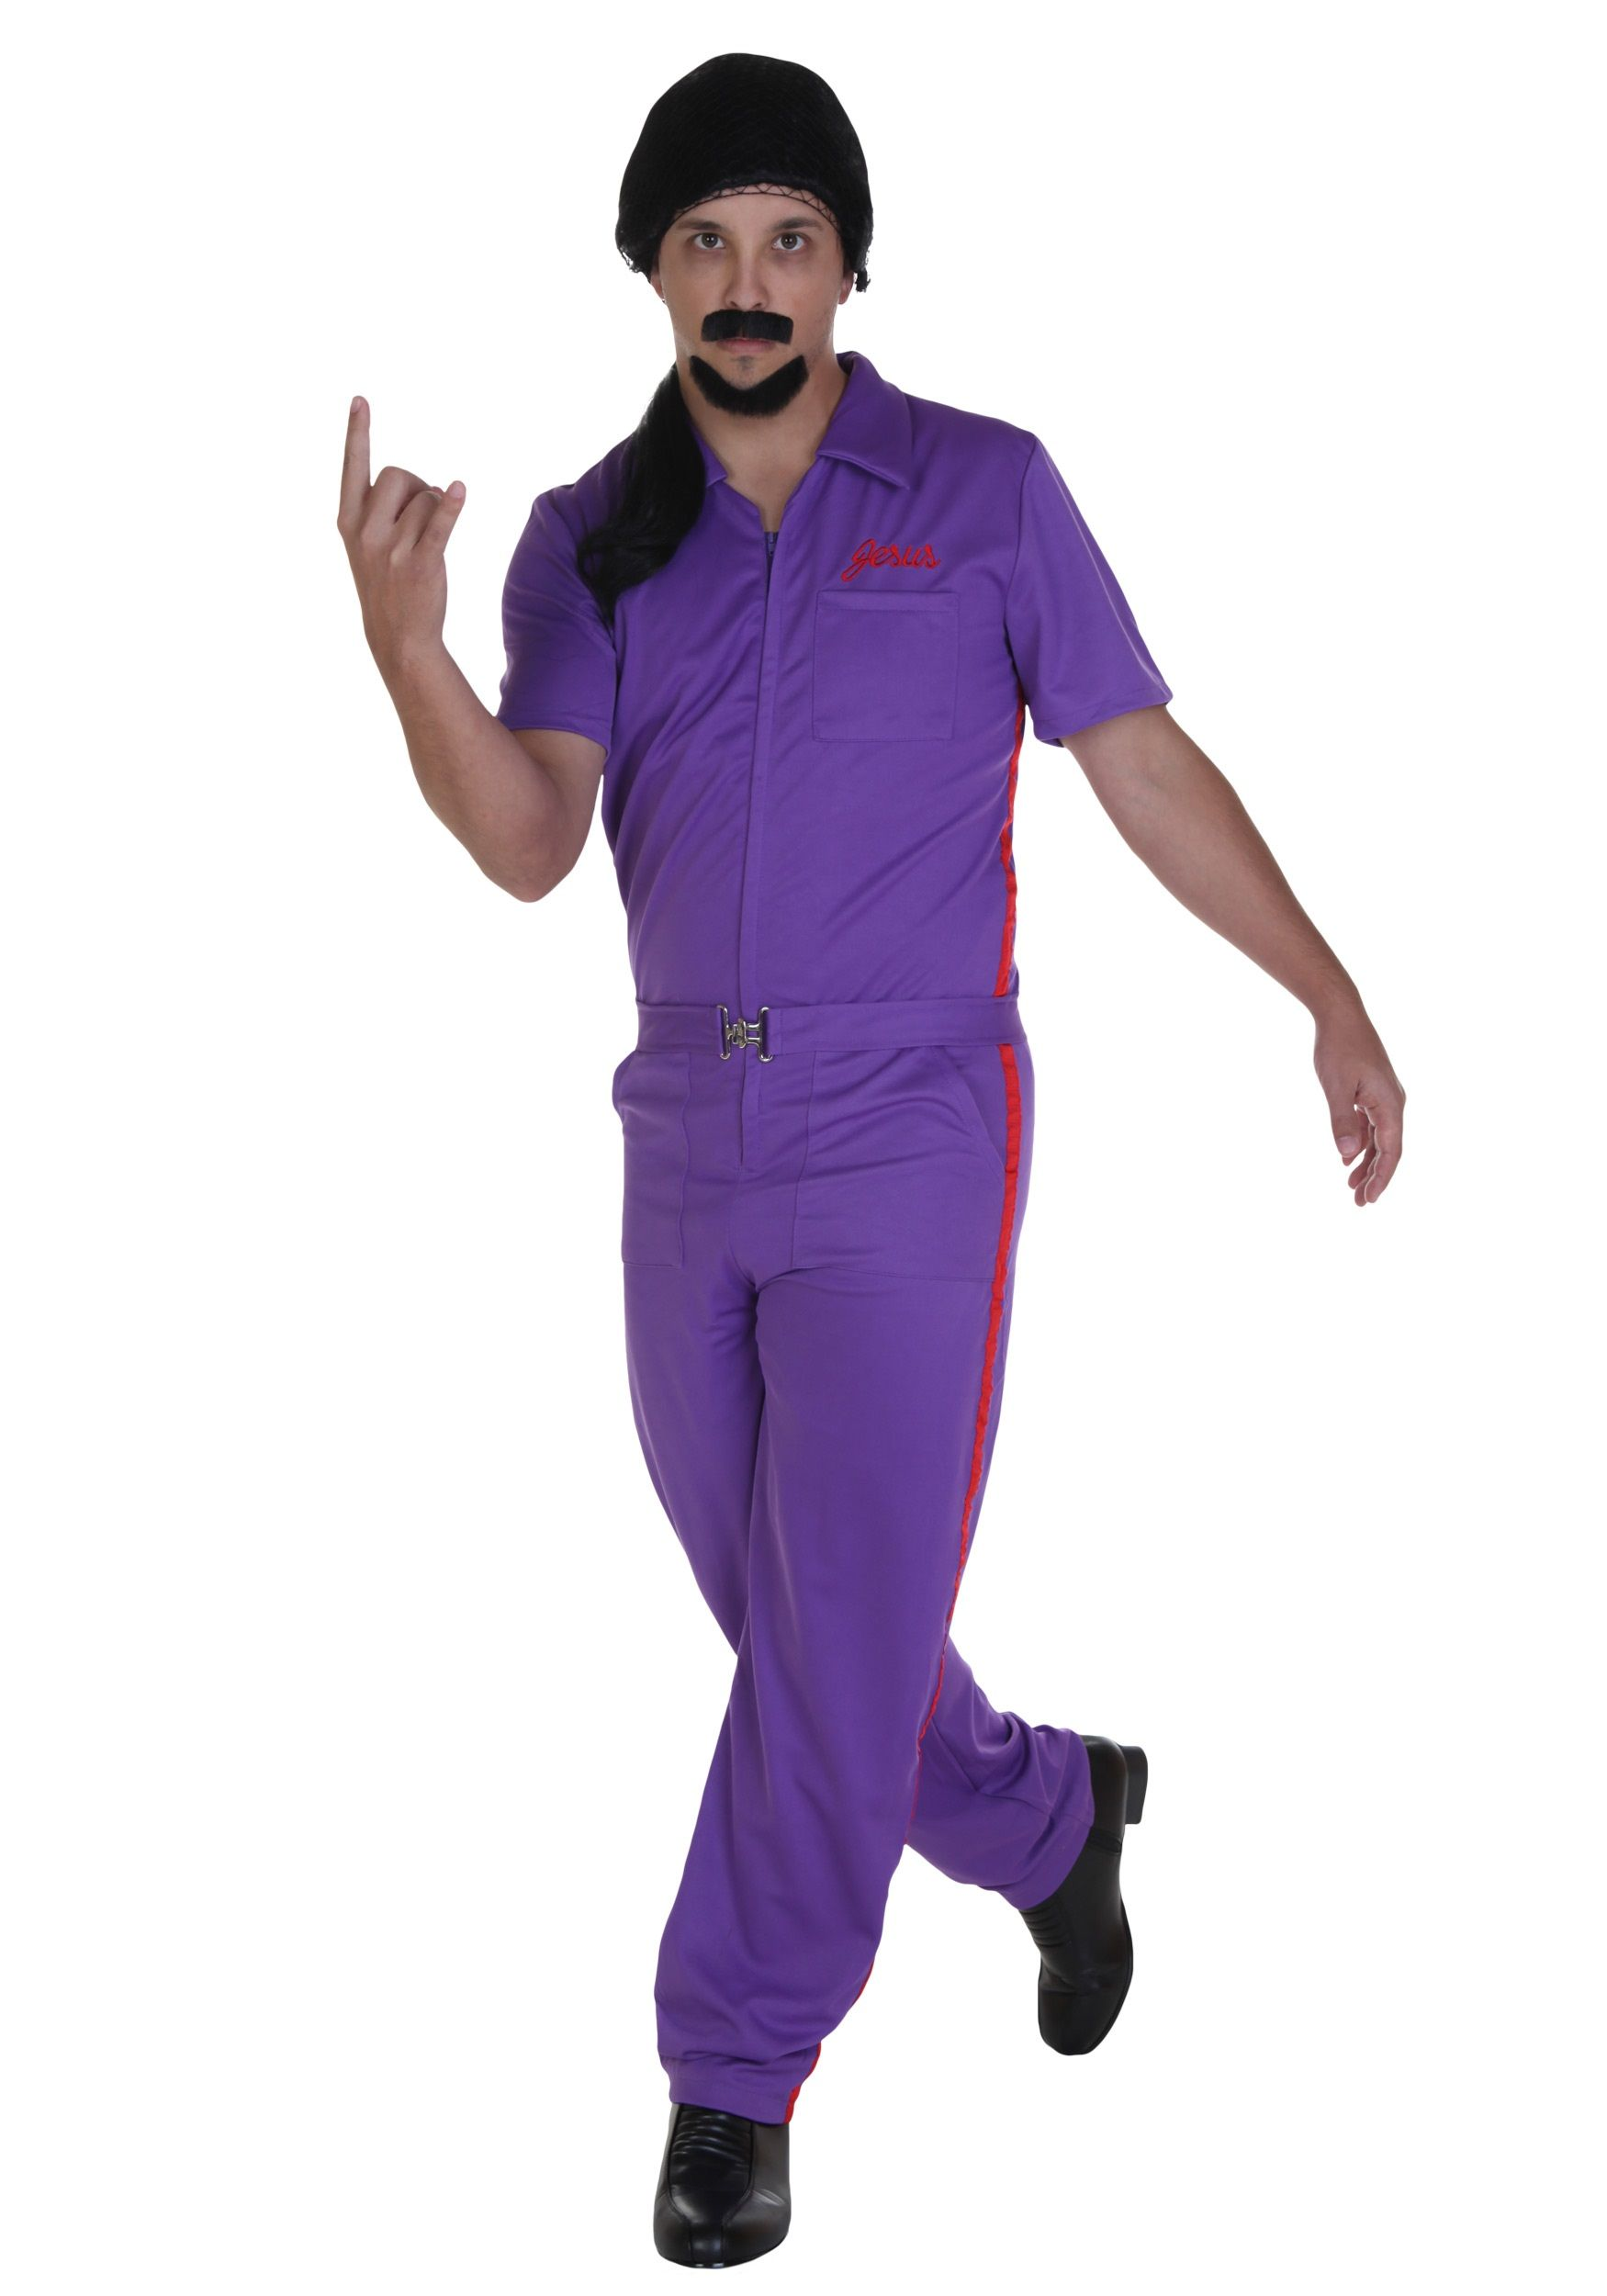 Big Lebowski Jesus Purple Deluxe Costume  sc 1 st  Pinterest & Big Lebowski Jesus Purple Deluxe Costume | stock photos | Pinterest ...